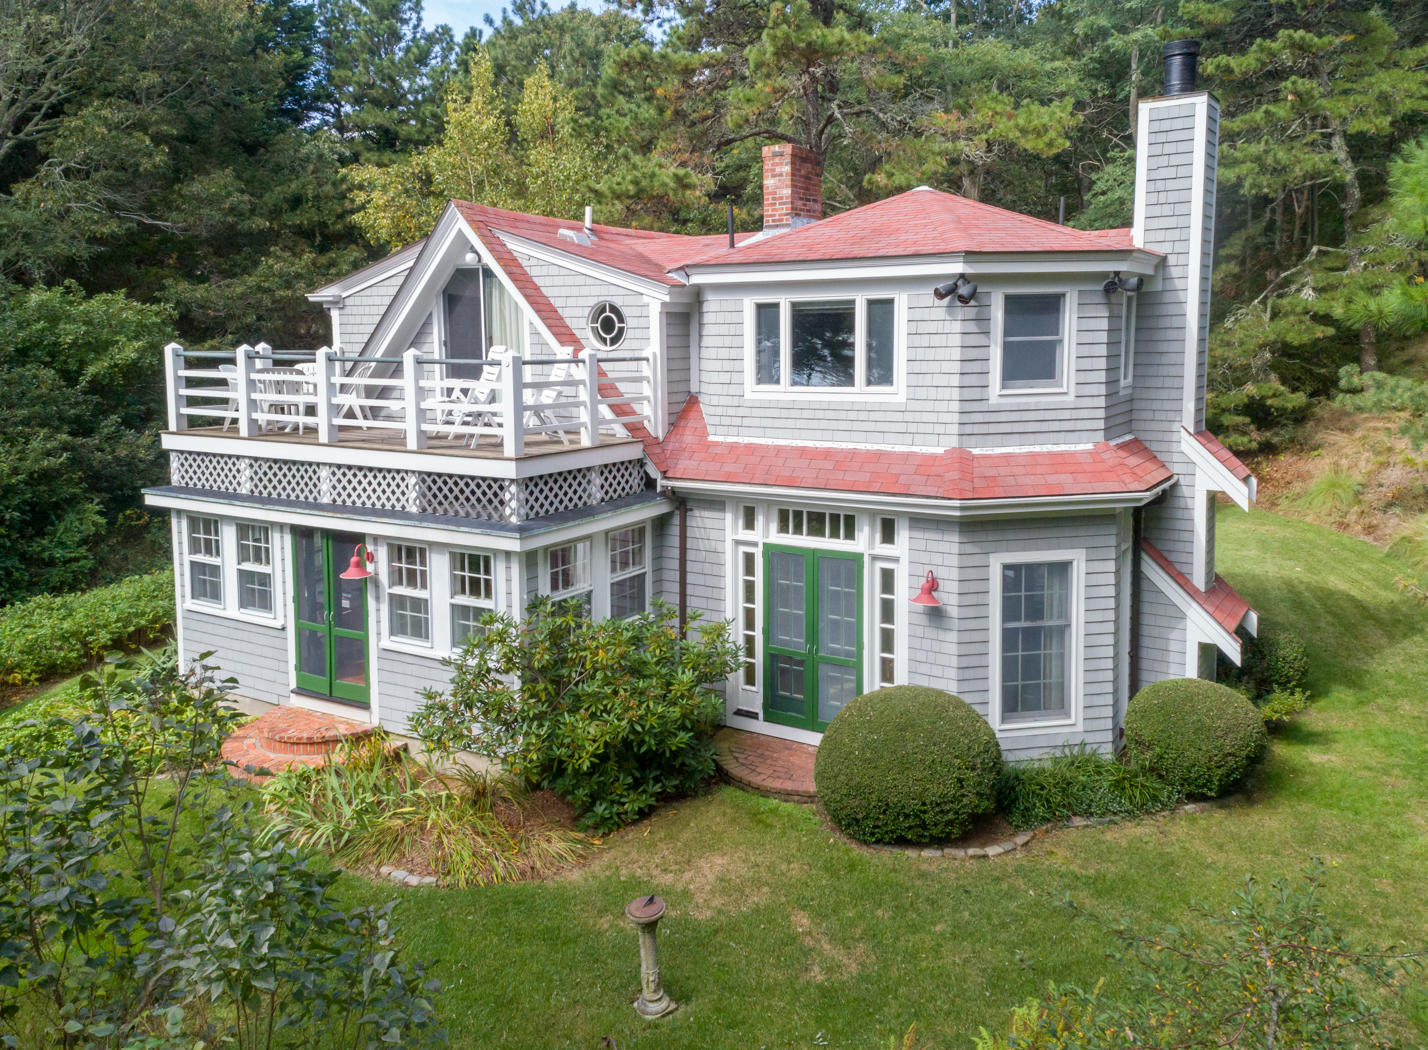 6 Moorings Way, Truro MA, 02666 details